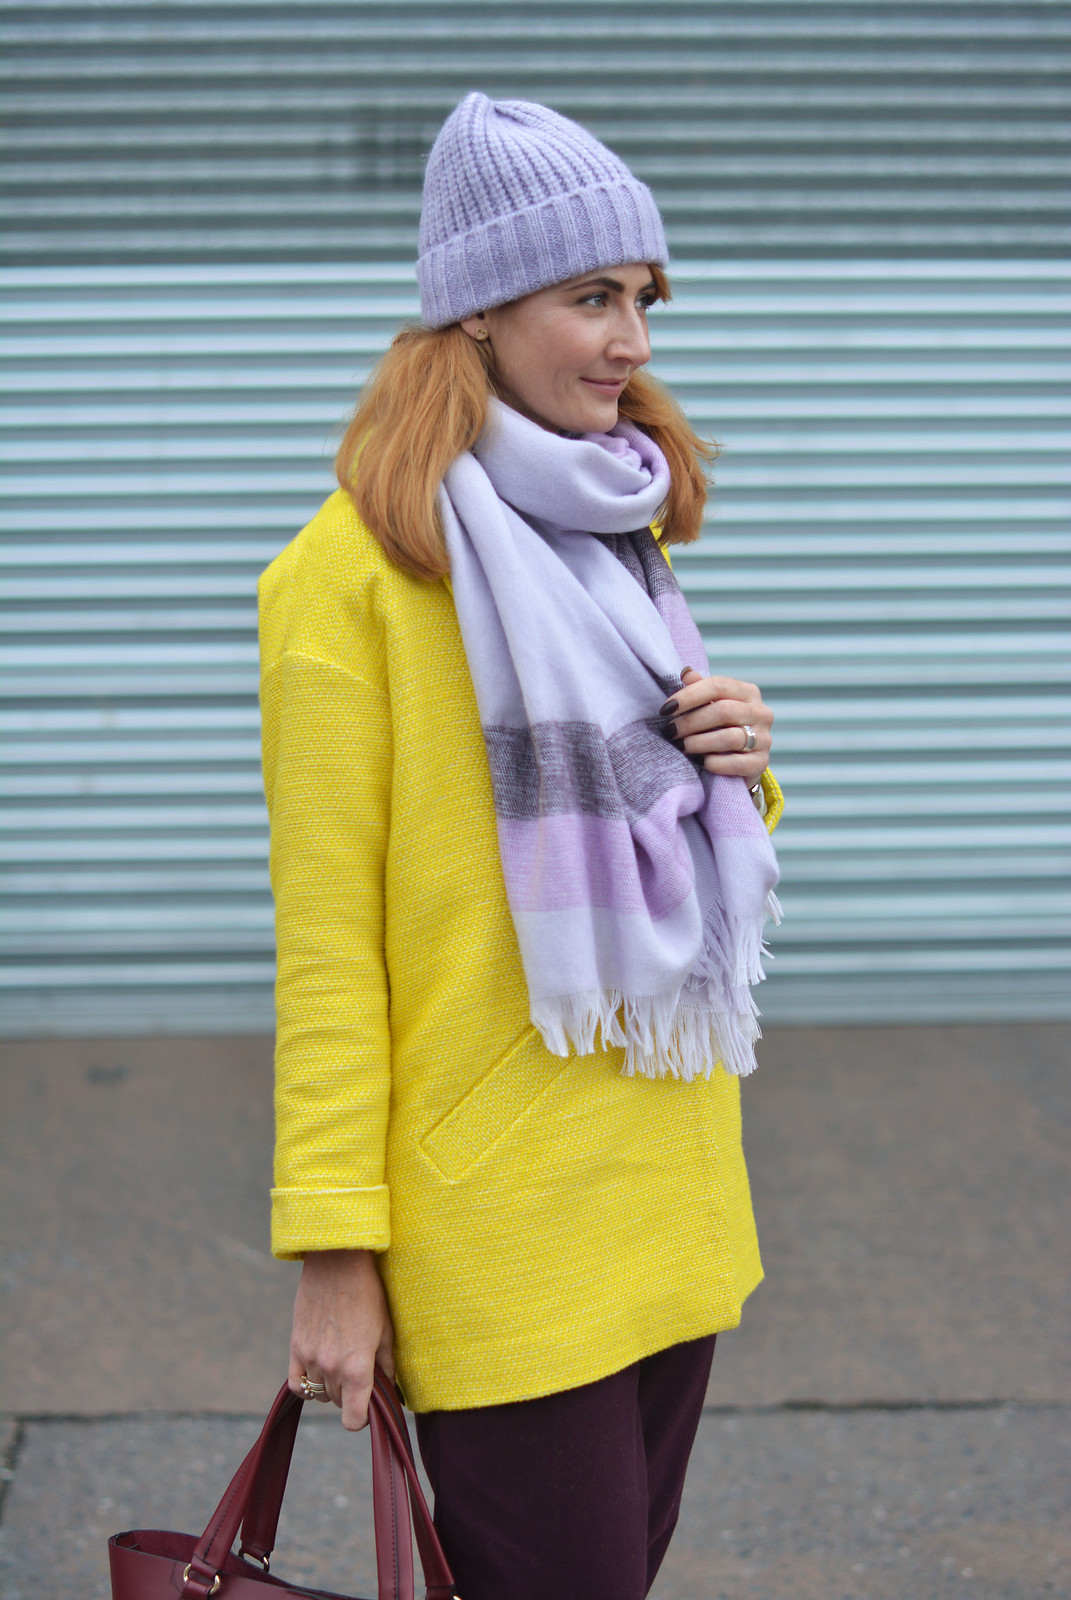 Bright winter outfit | Yellow coat, purple trousers, lilac scarf & hat